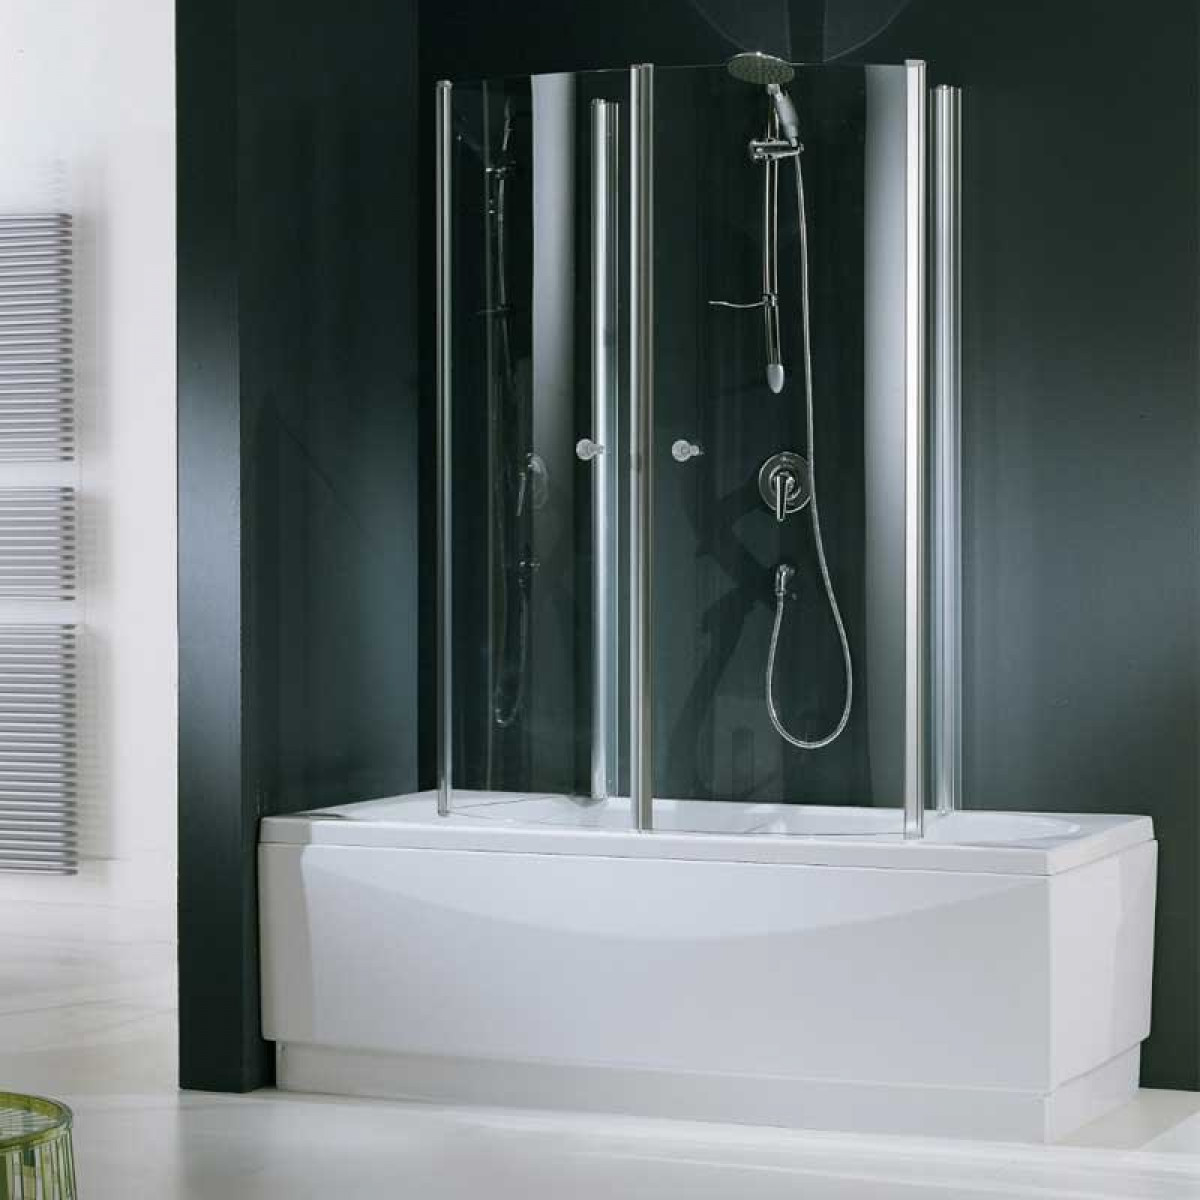 Aurora 4 Novellini.Novellini Aurora 4 Two Folding 750mm Bath Screen